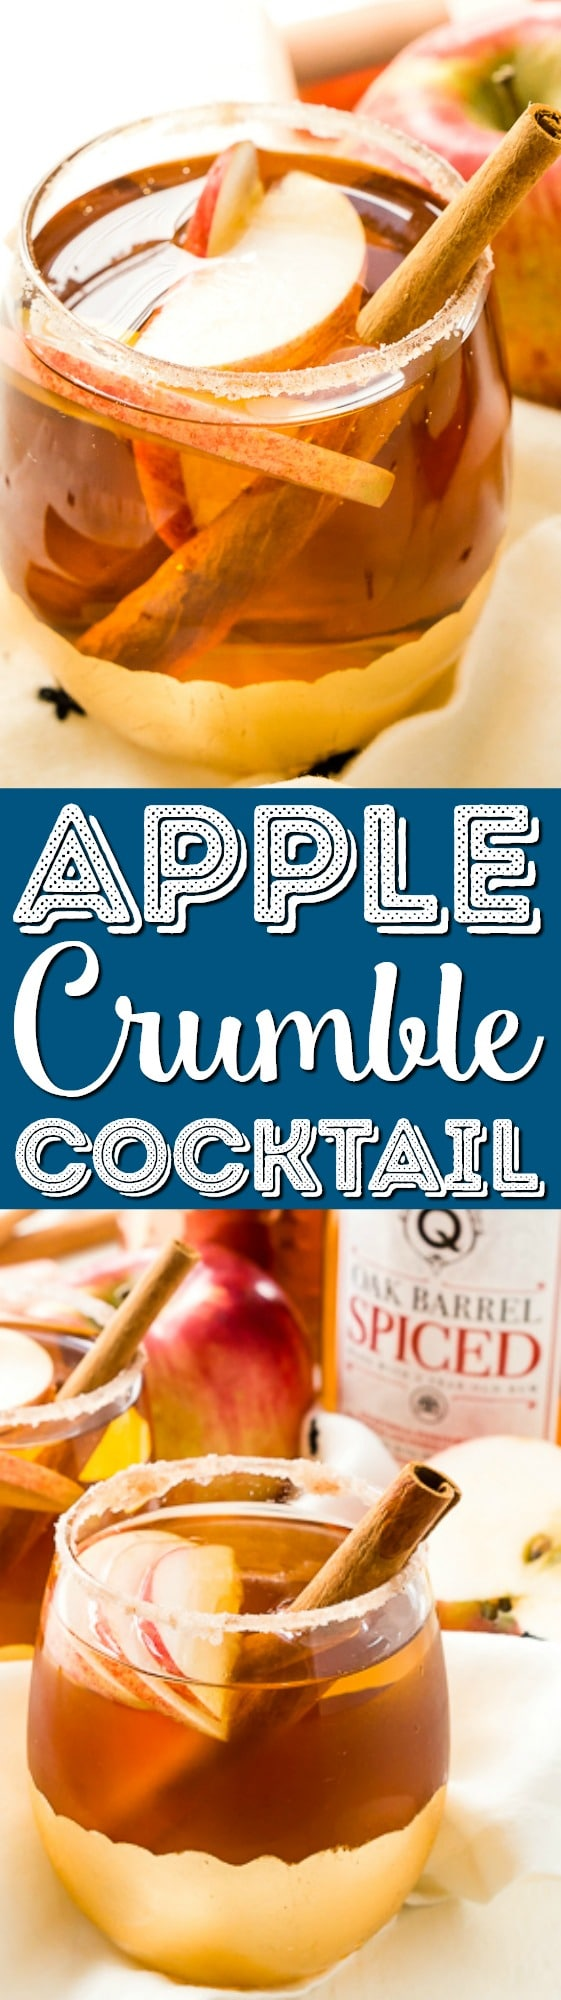 This Apple Crumble Cocktail is so simple to make and tastes like a crumbly apple pie in liquid form, a delicious fall alcoholic drink you can make in minutes! via @sugarandsoulco